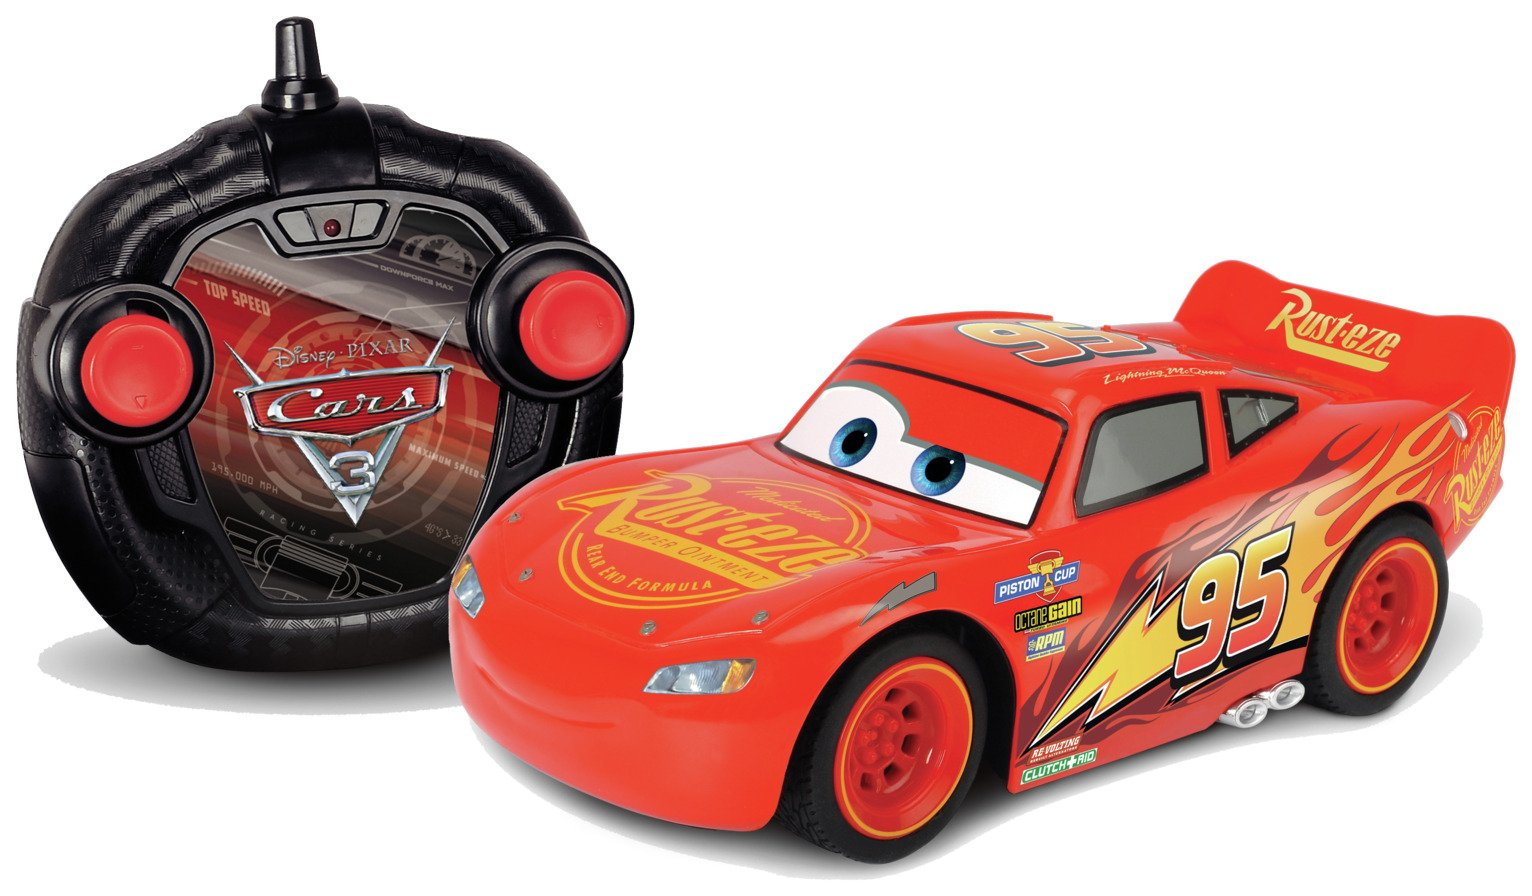 Image of Cars 3 Lightning McQueen RC Turbo Racer Car 1:24